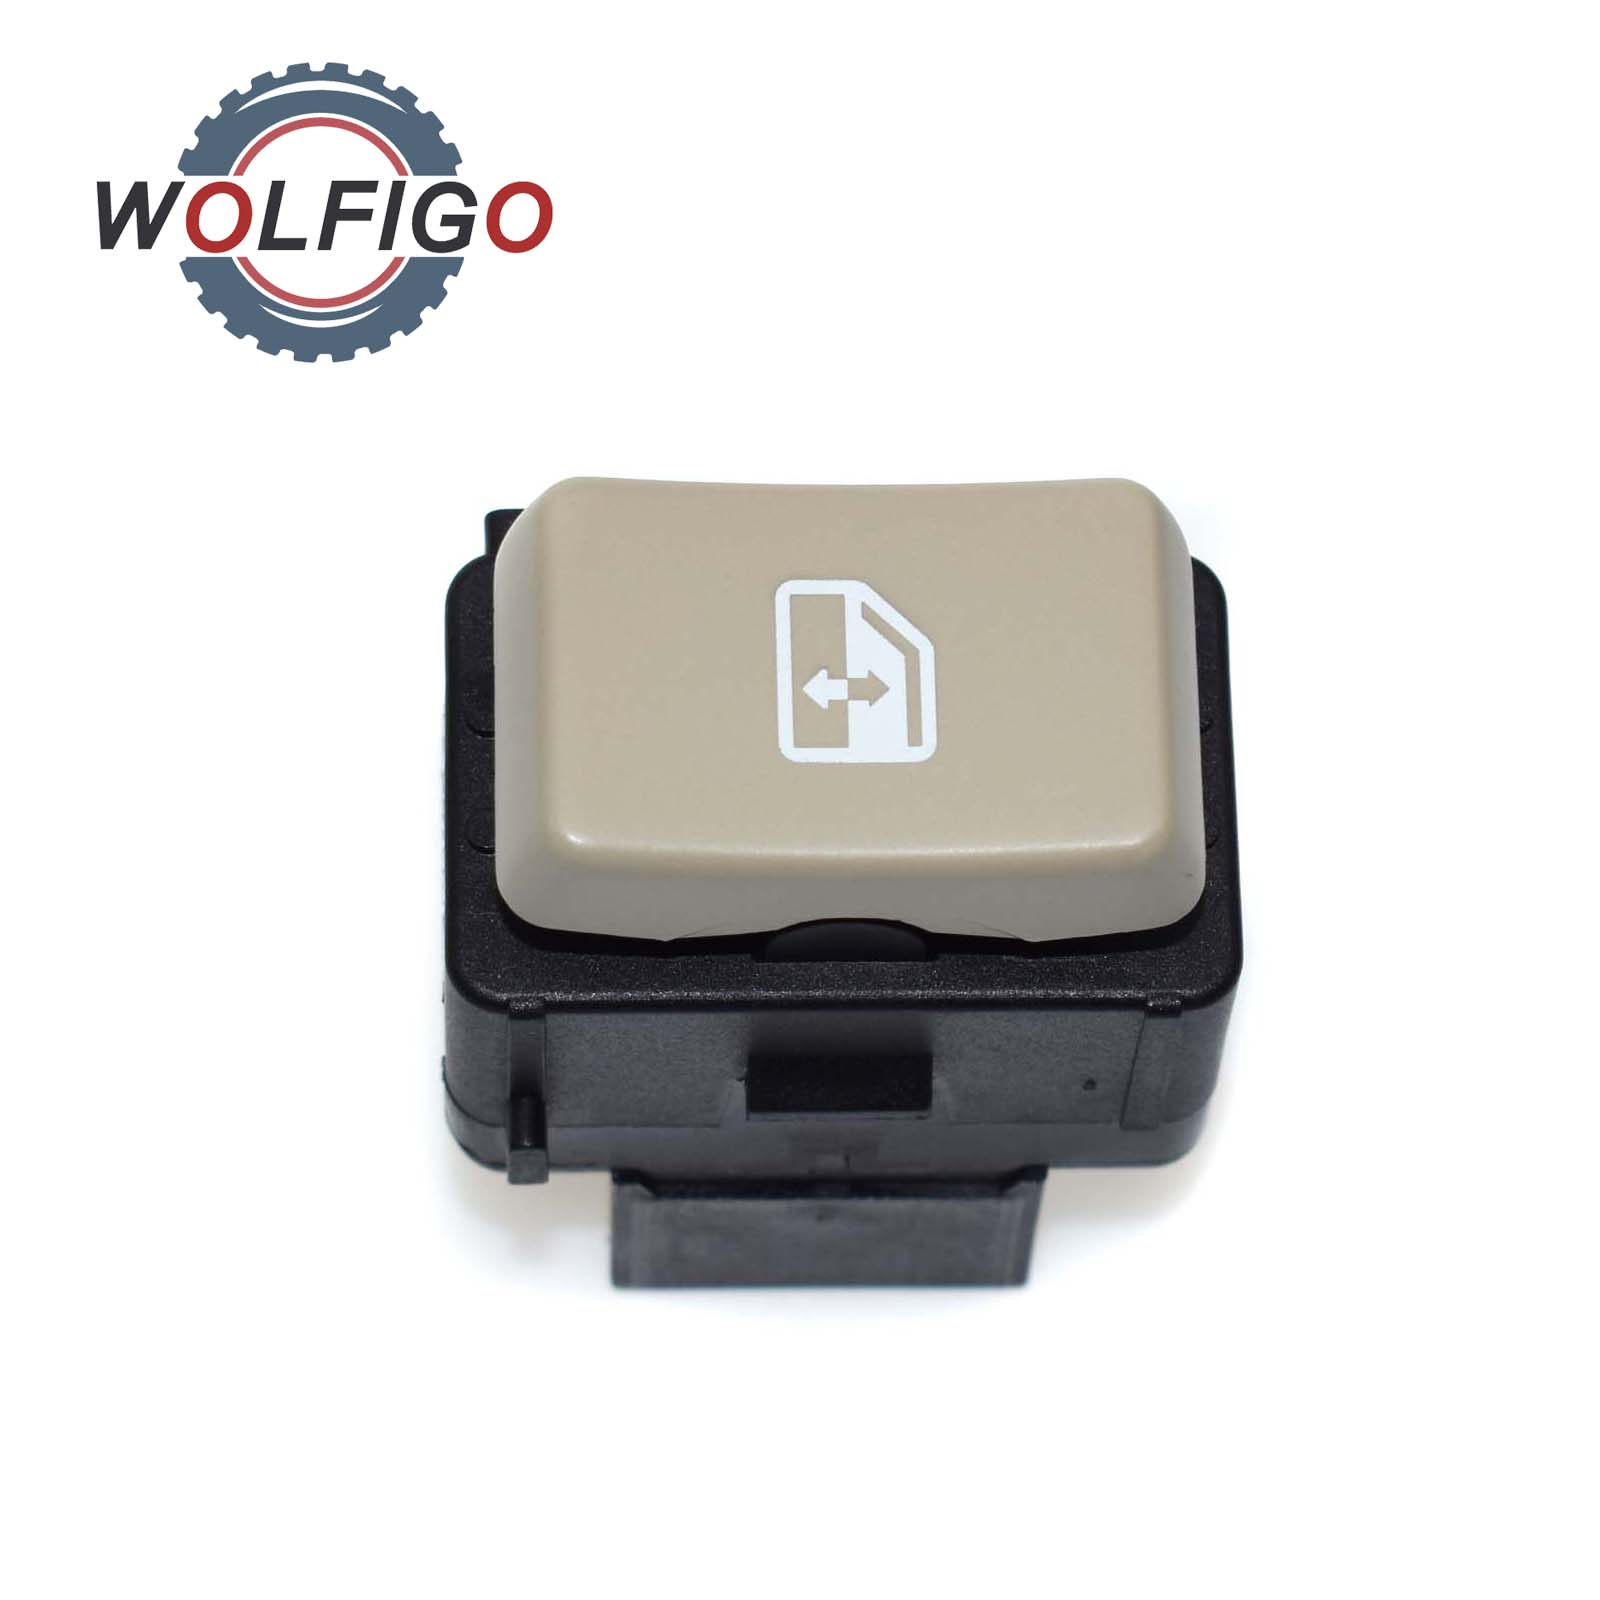 Wolfigo Electric Power Window Switch Passenger Side For Buick Rendezvous L V on Buick Rendezvous Power Window Parts